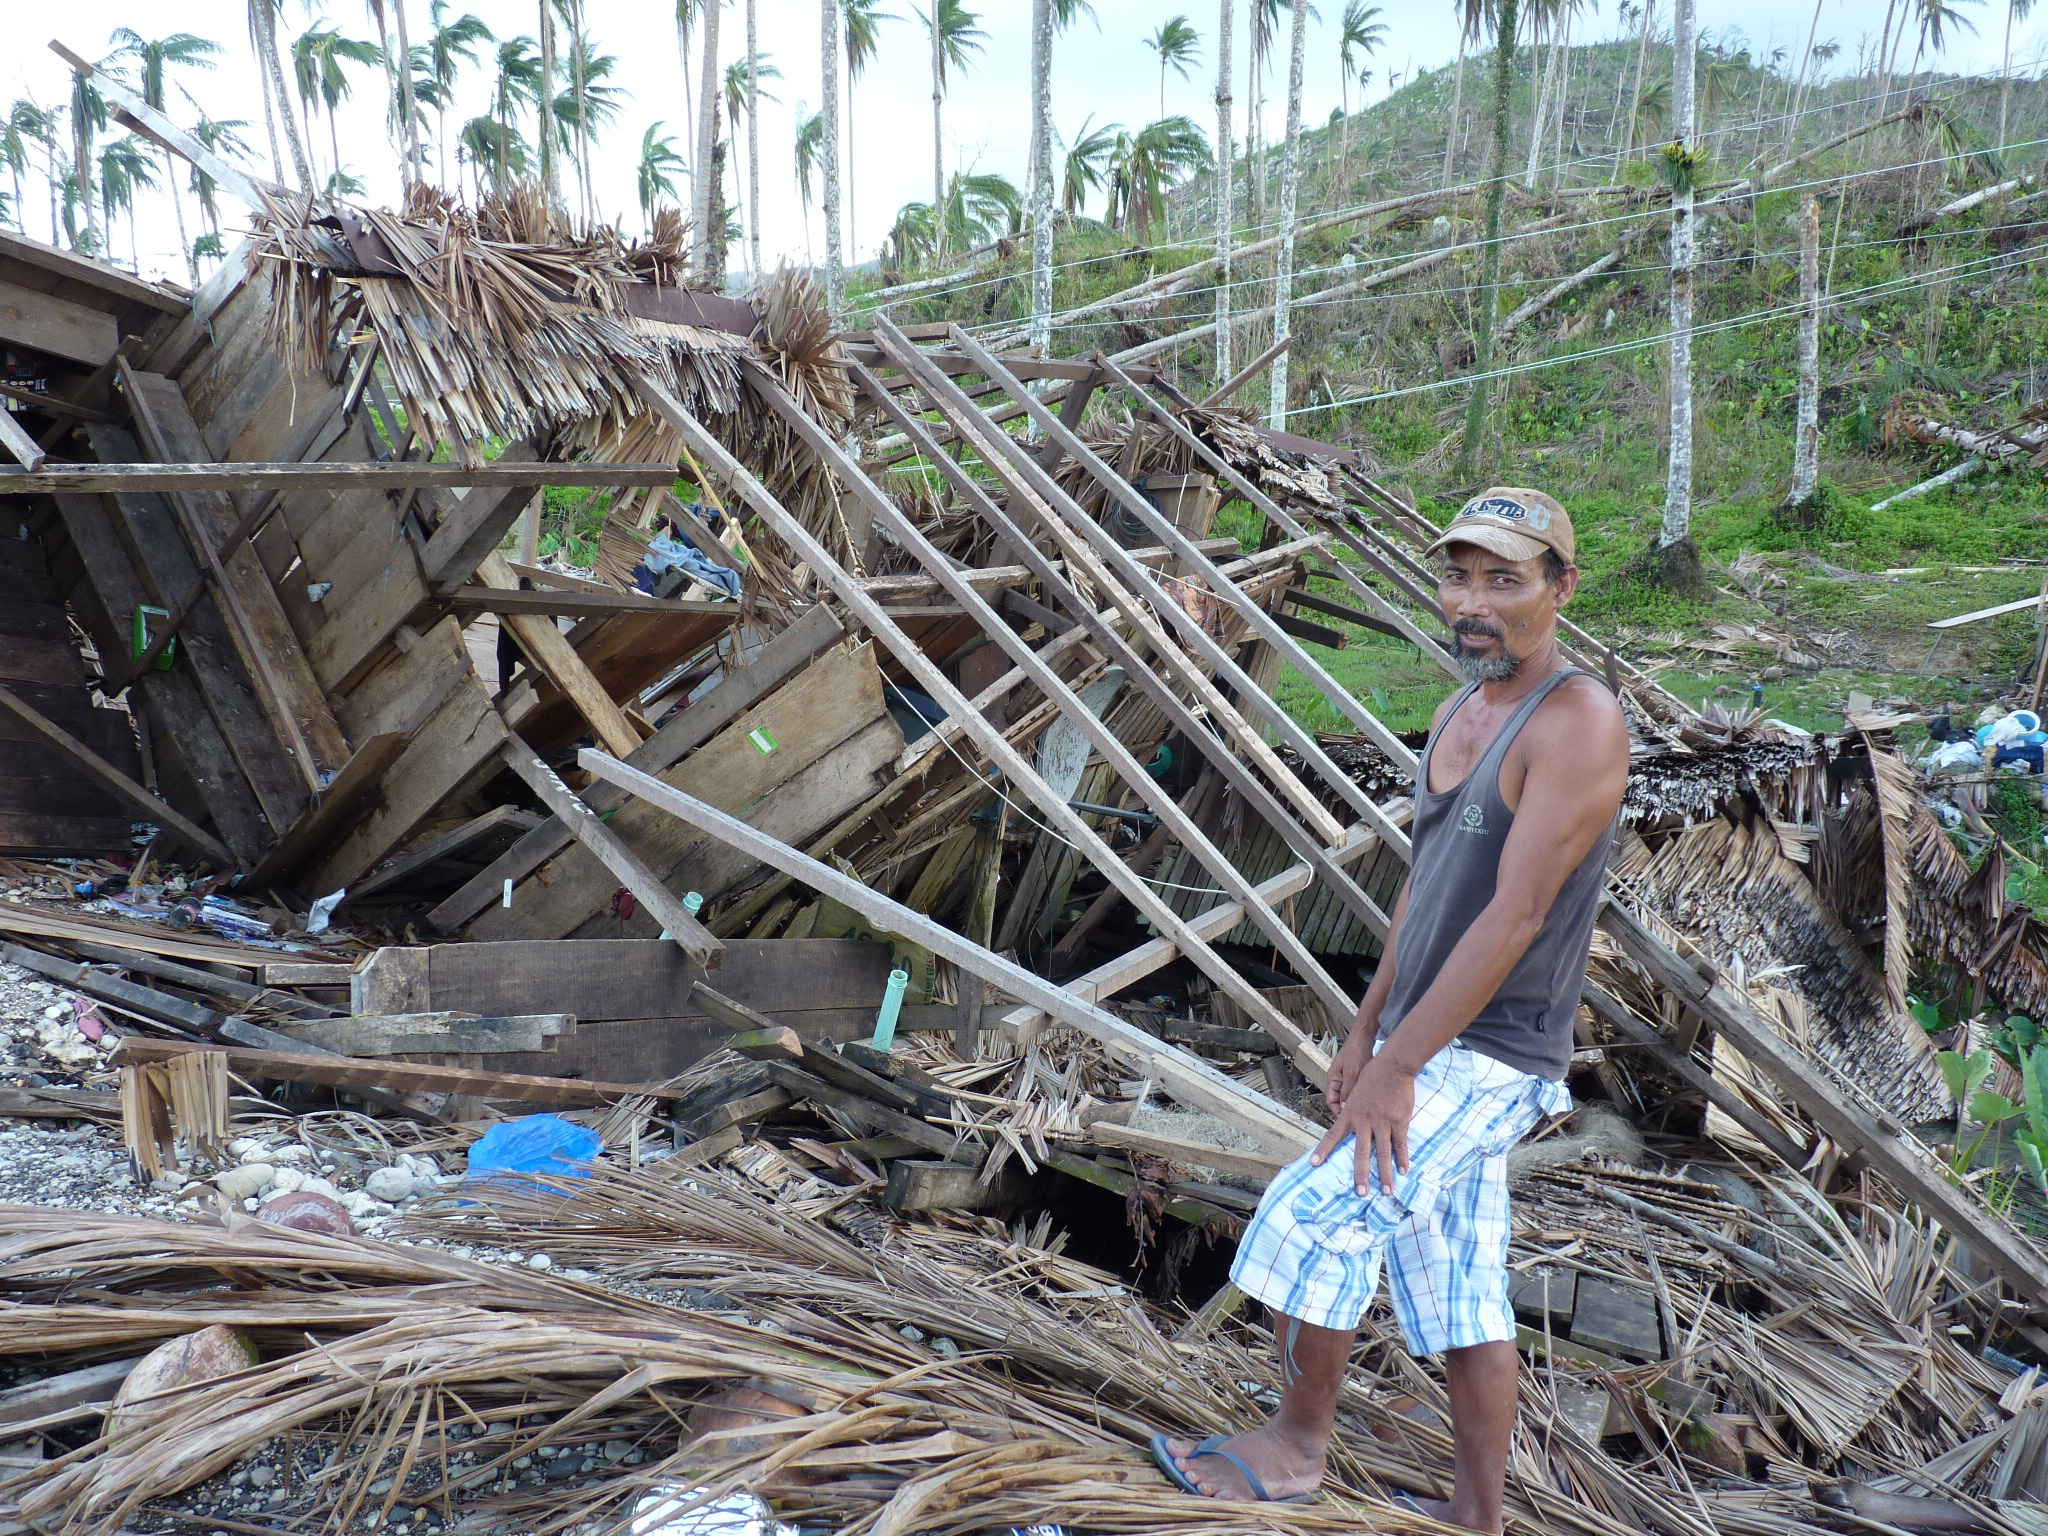 Farmer Armando Banudan lost his home, his crops and everything during Typhoon Pablo last December 2012